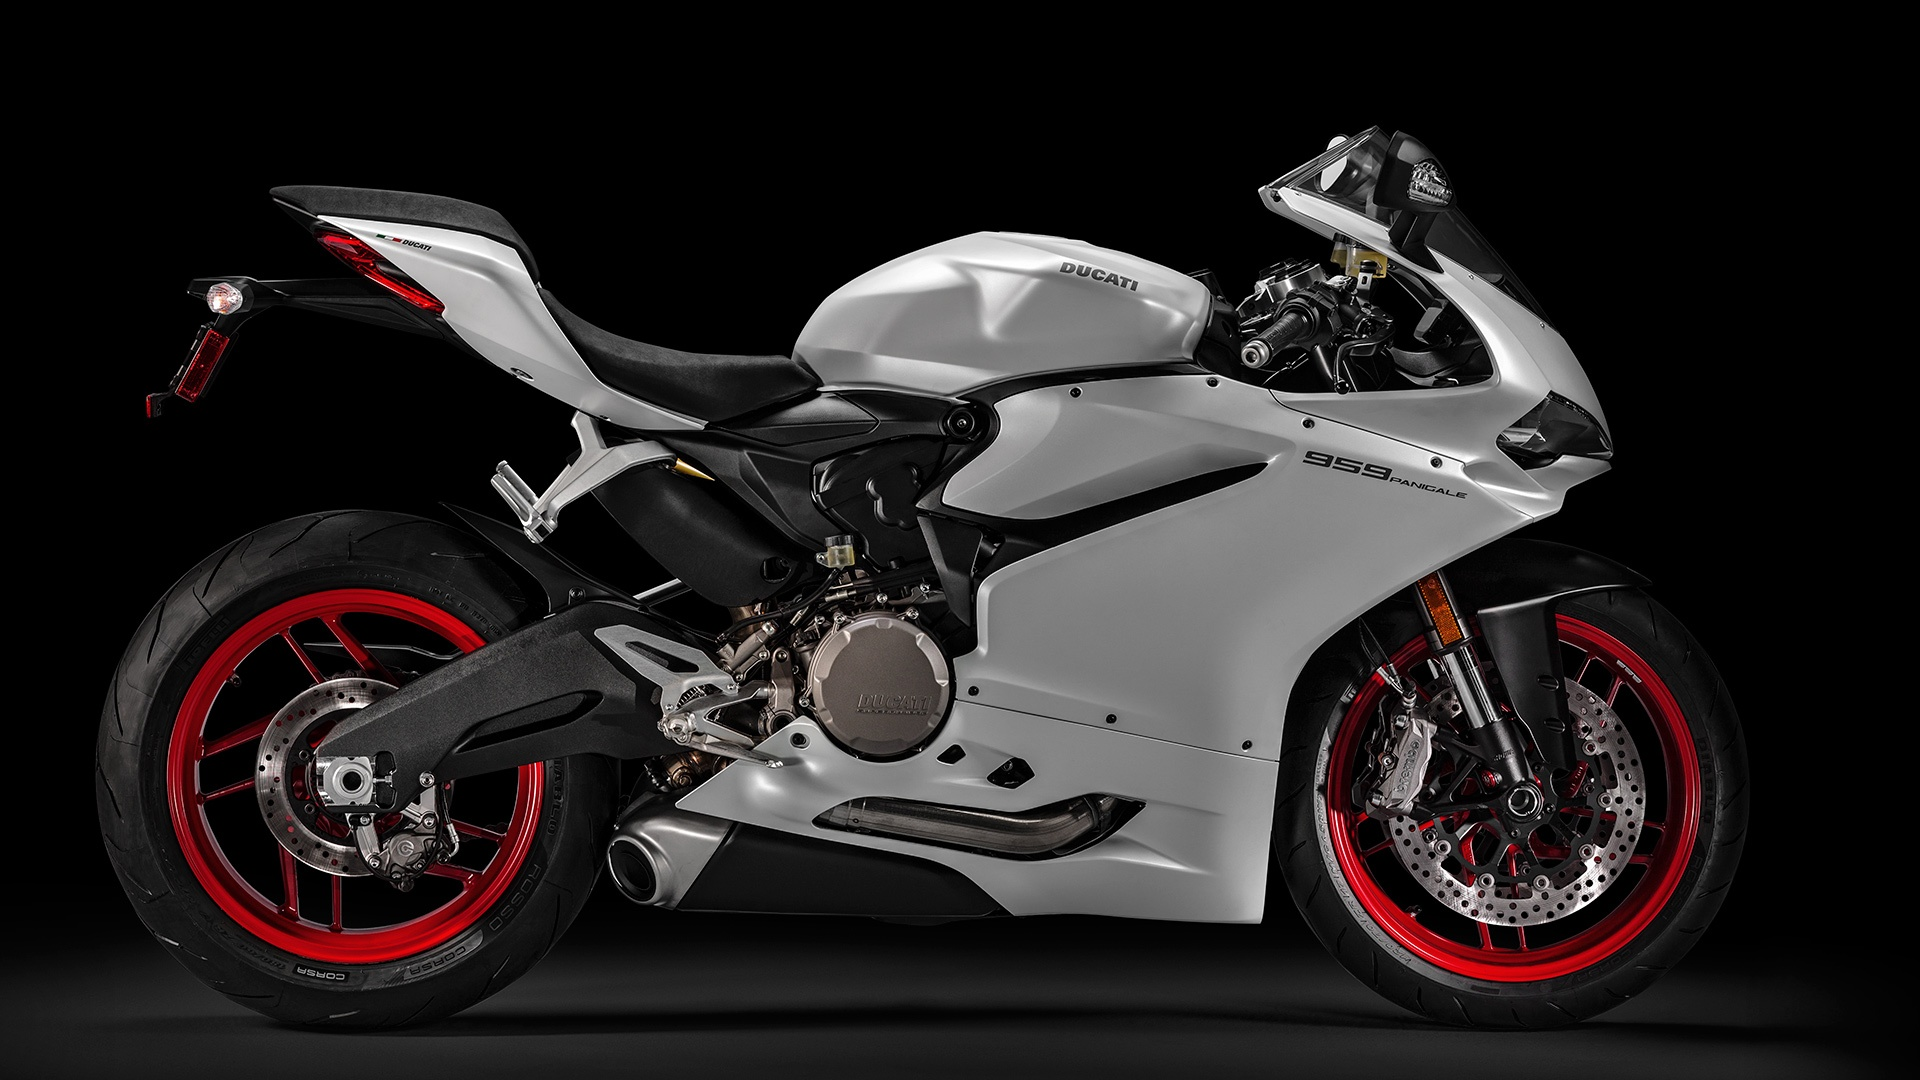 new 2017 ducati superbike 959 panigale (us version) motorcycles in